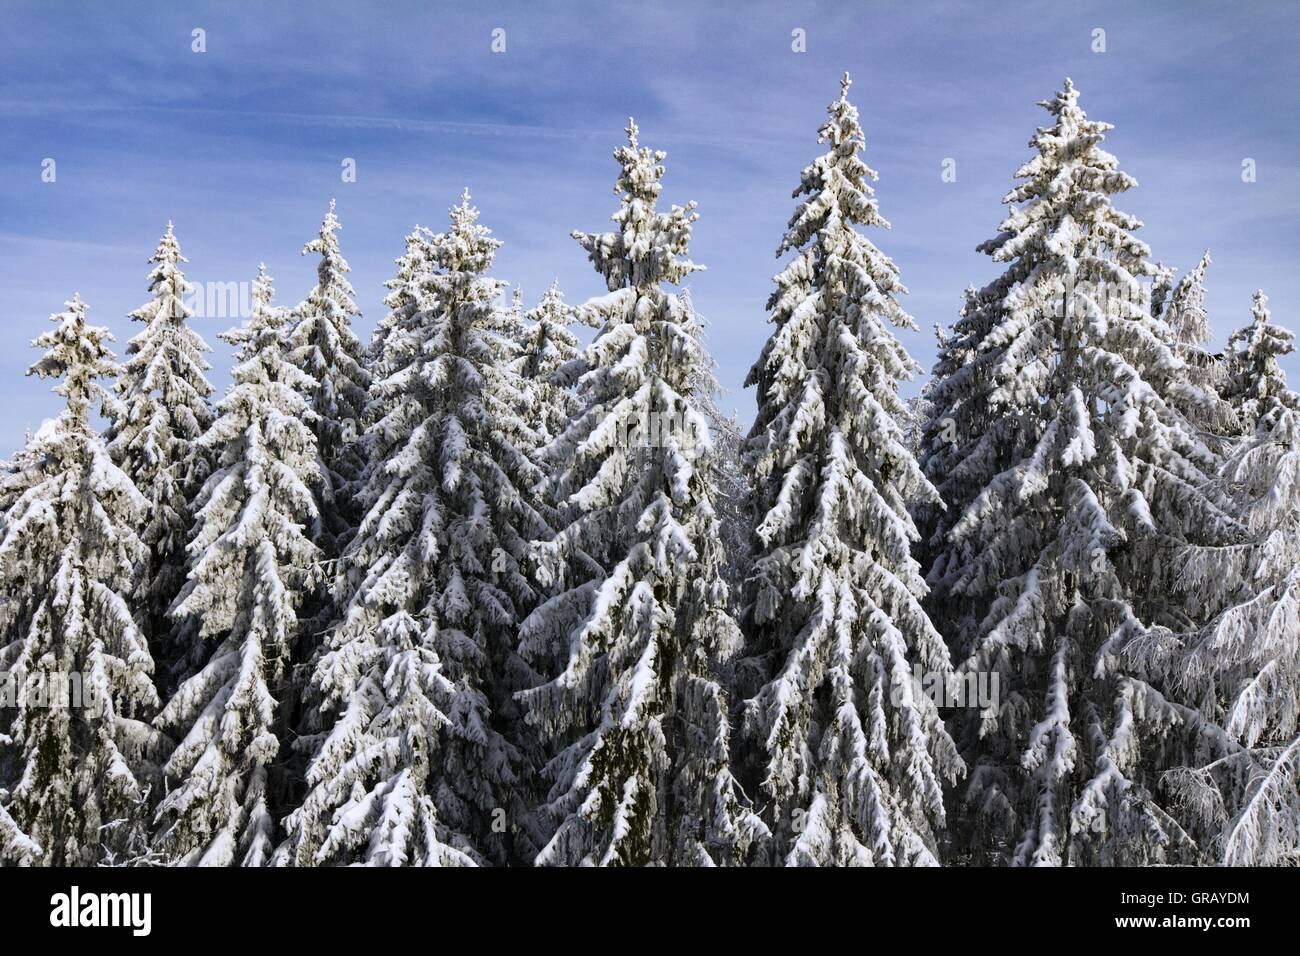 Snow-Covered Spruces In The Franconian Forest On The Radspitze - Stock Image